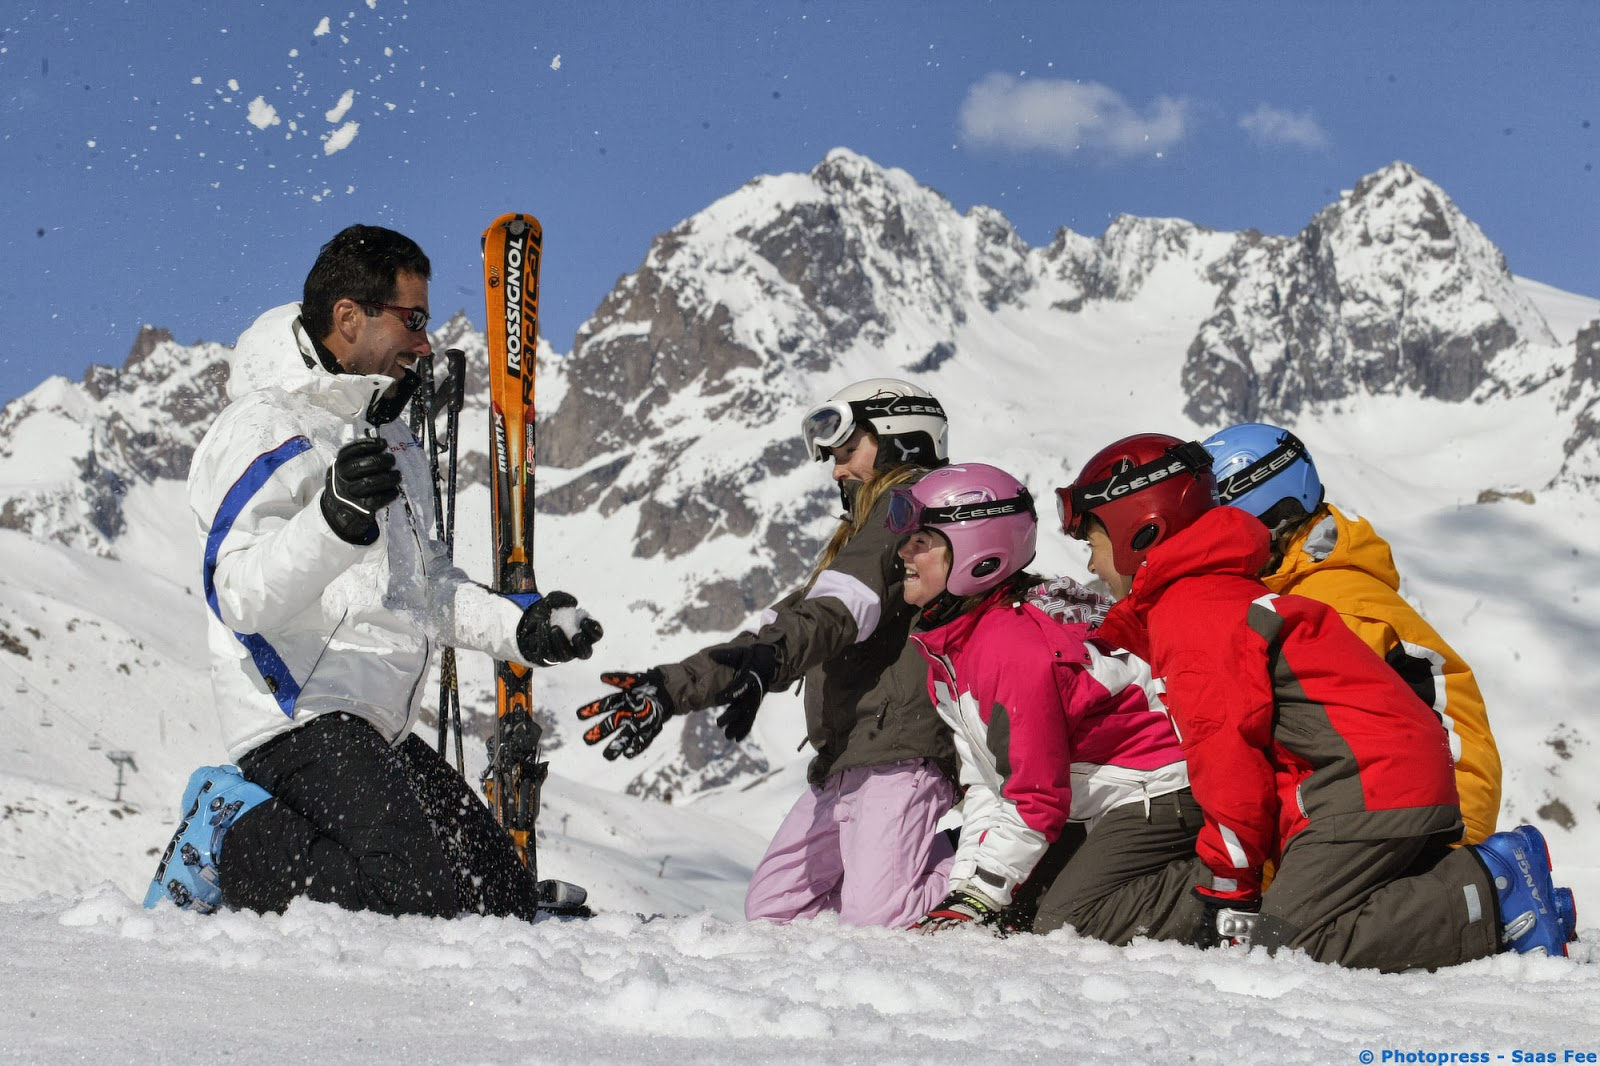 Saas Fee, Switzerland - The Top Ski Resorts for Families In The World